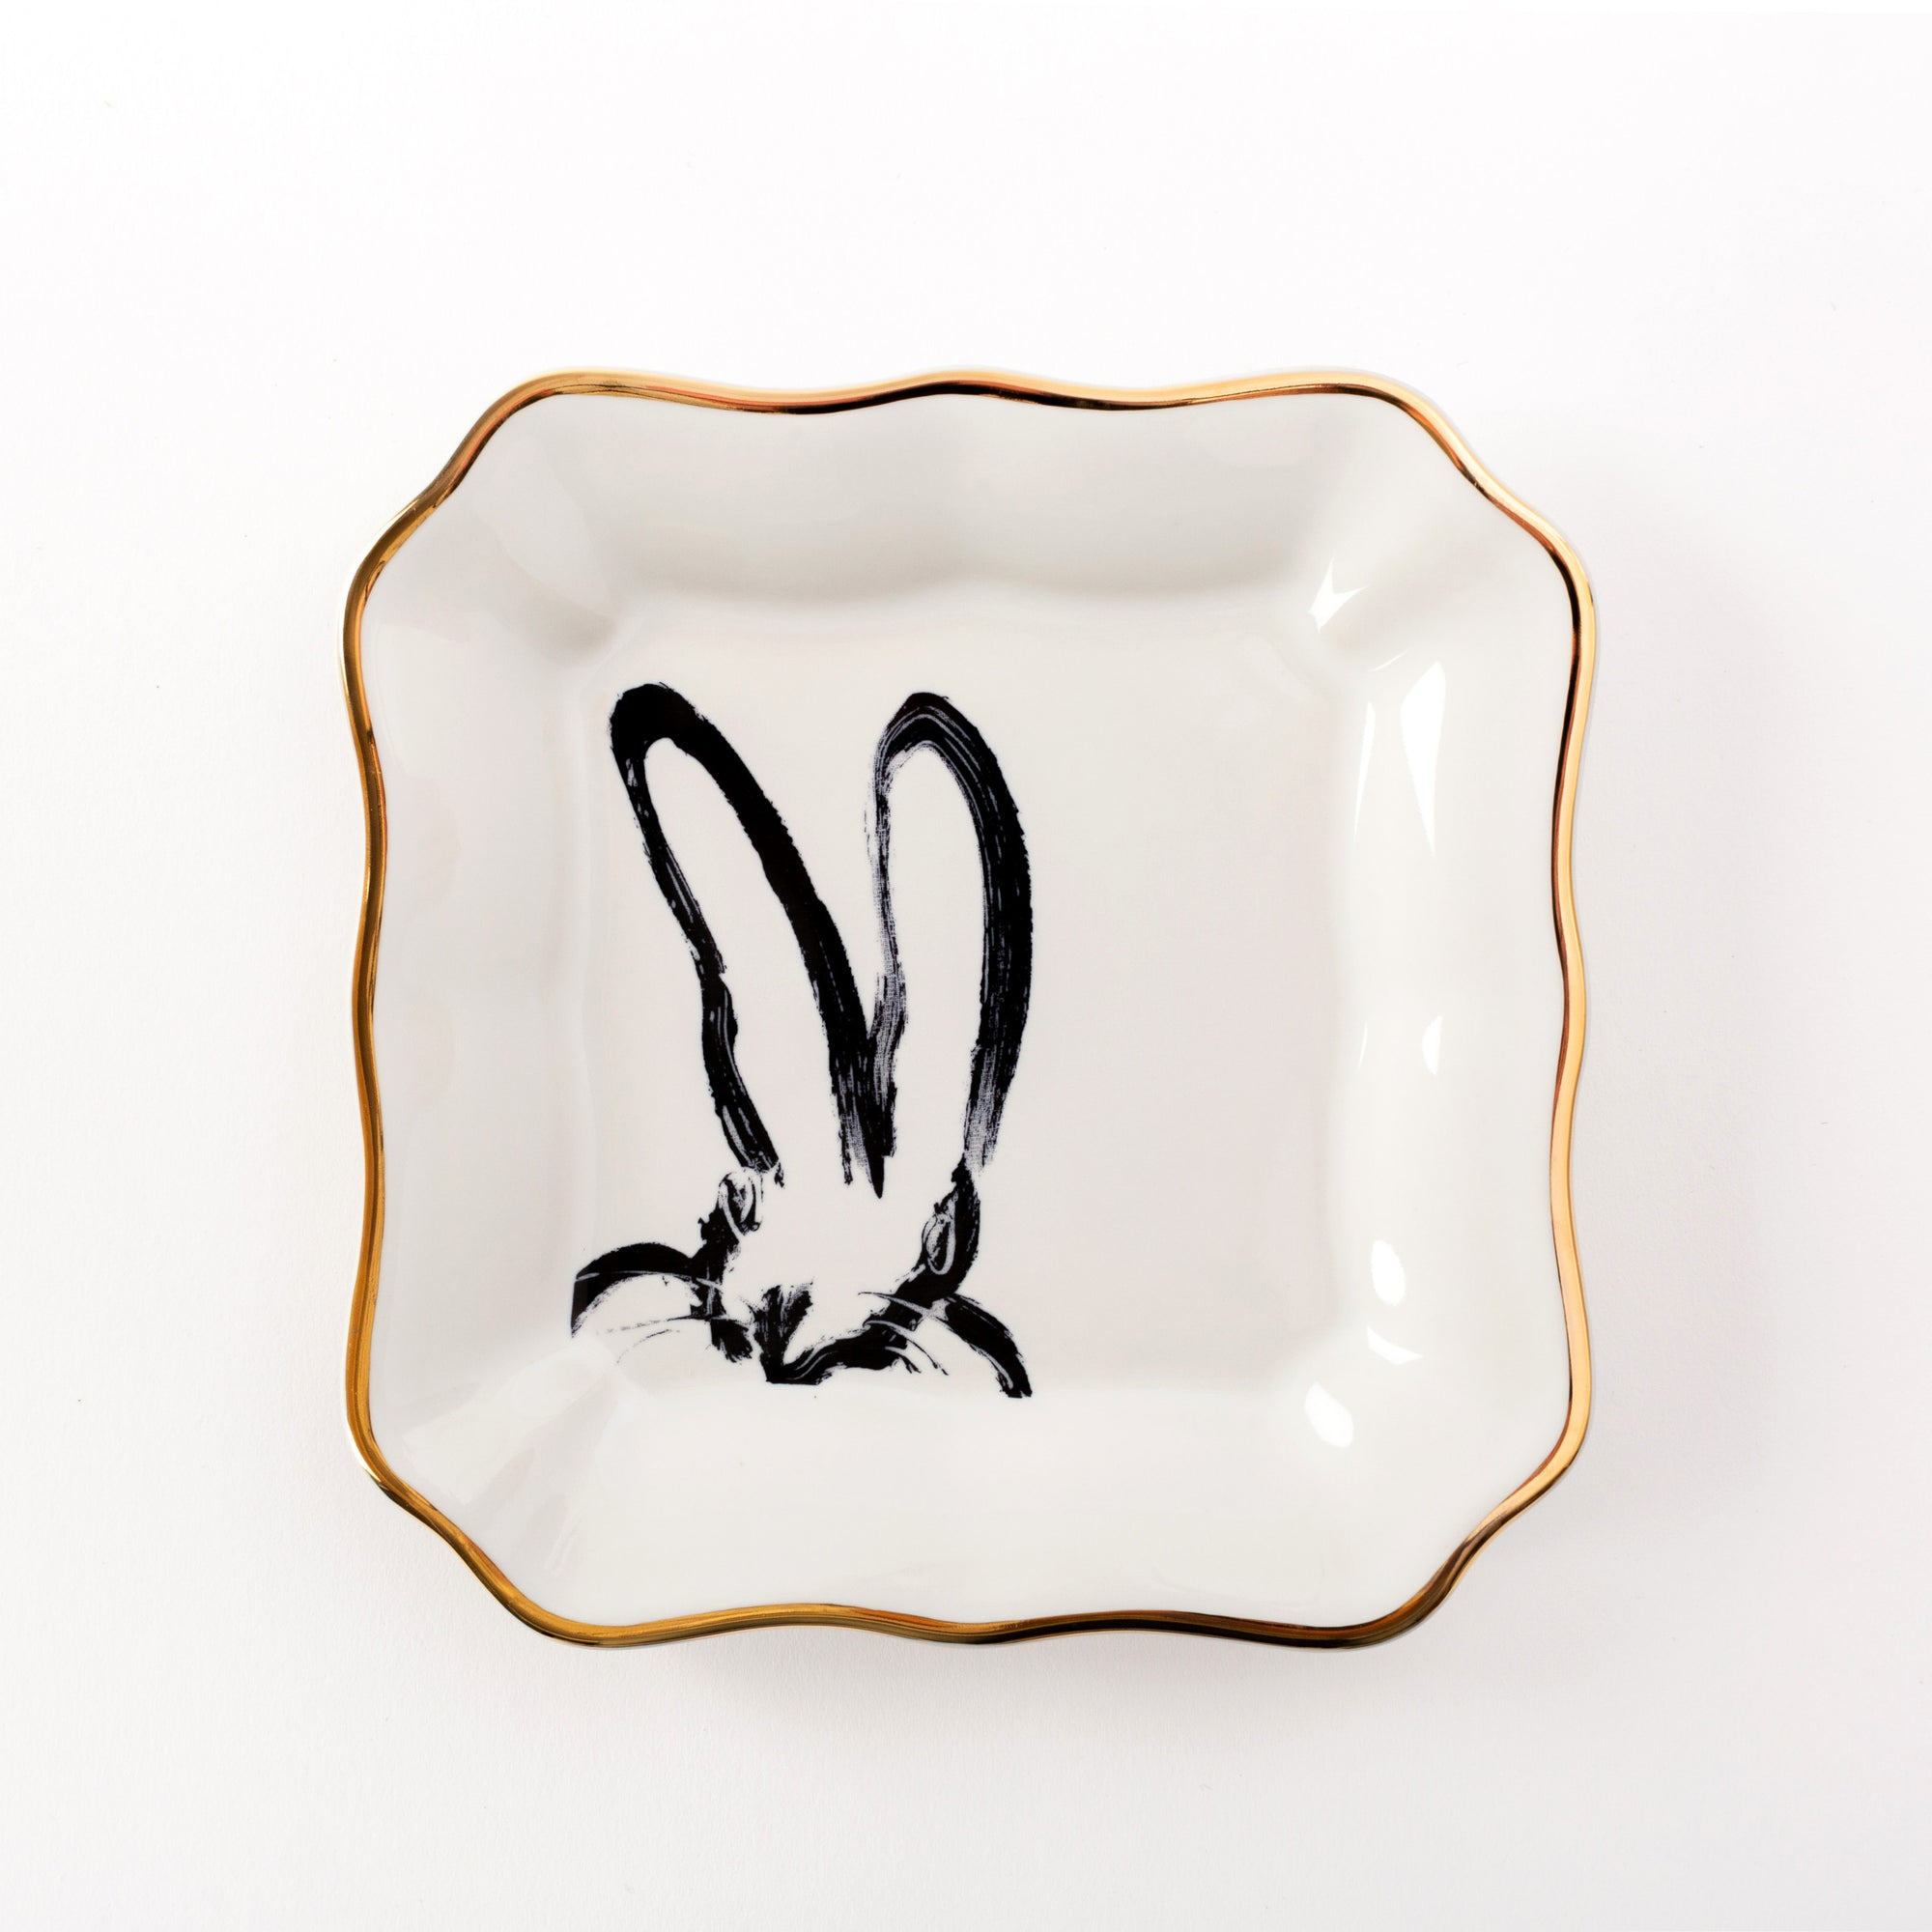 Bunny Portrait Plate - White with Gold Rim